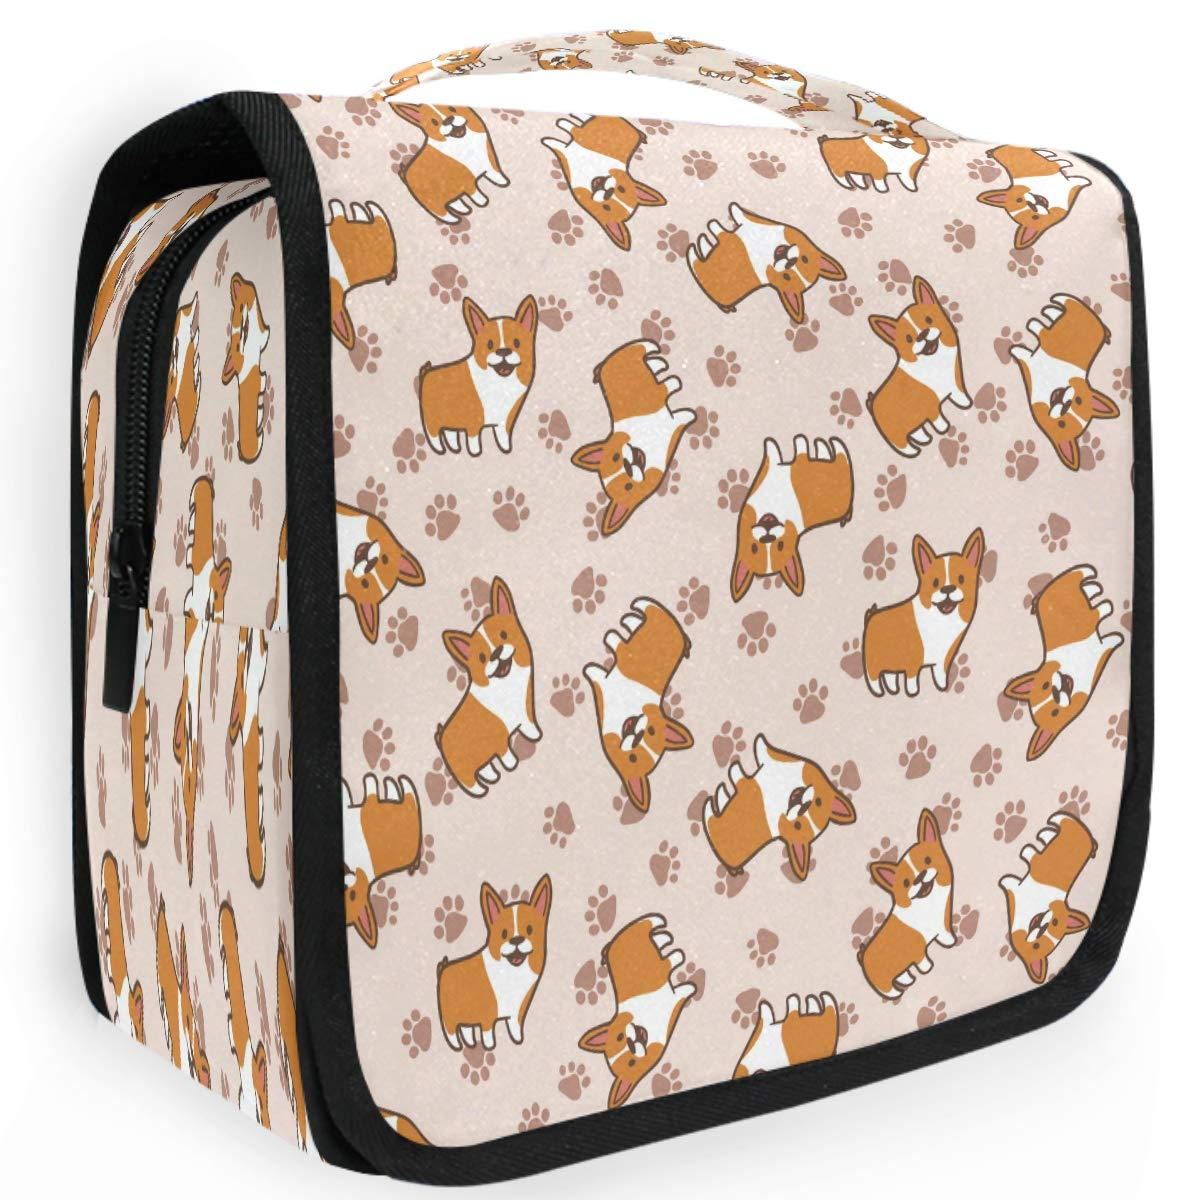 Olinyou Cartoon Corgis Paw Dog Cute Animal Travel Toiletry Cosmetic Bag Hanging Shower Makeup Bag Pouch Portable Train Tote Case Organizer Storage For Women Girls